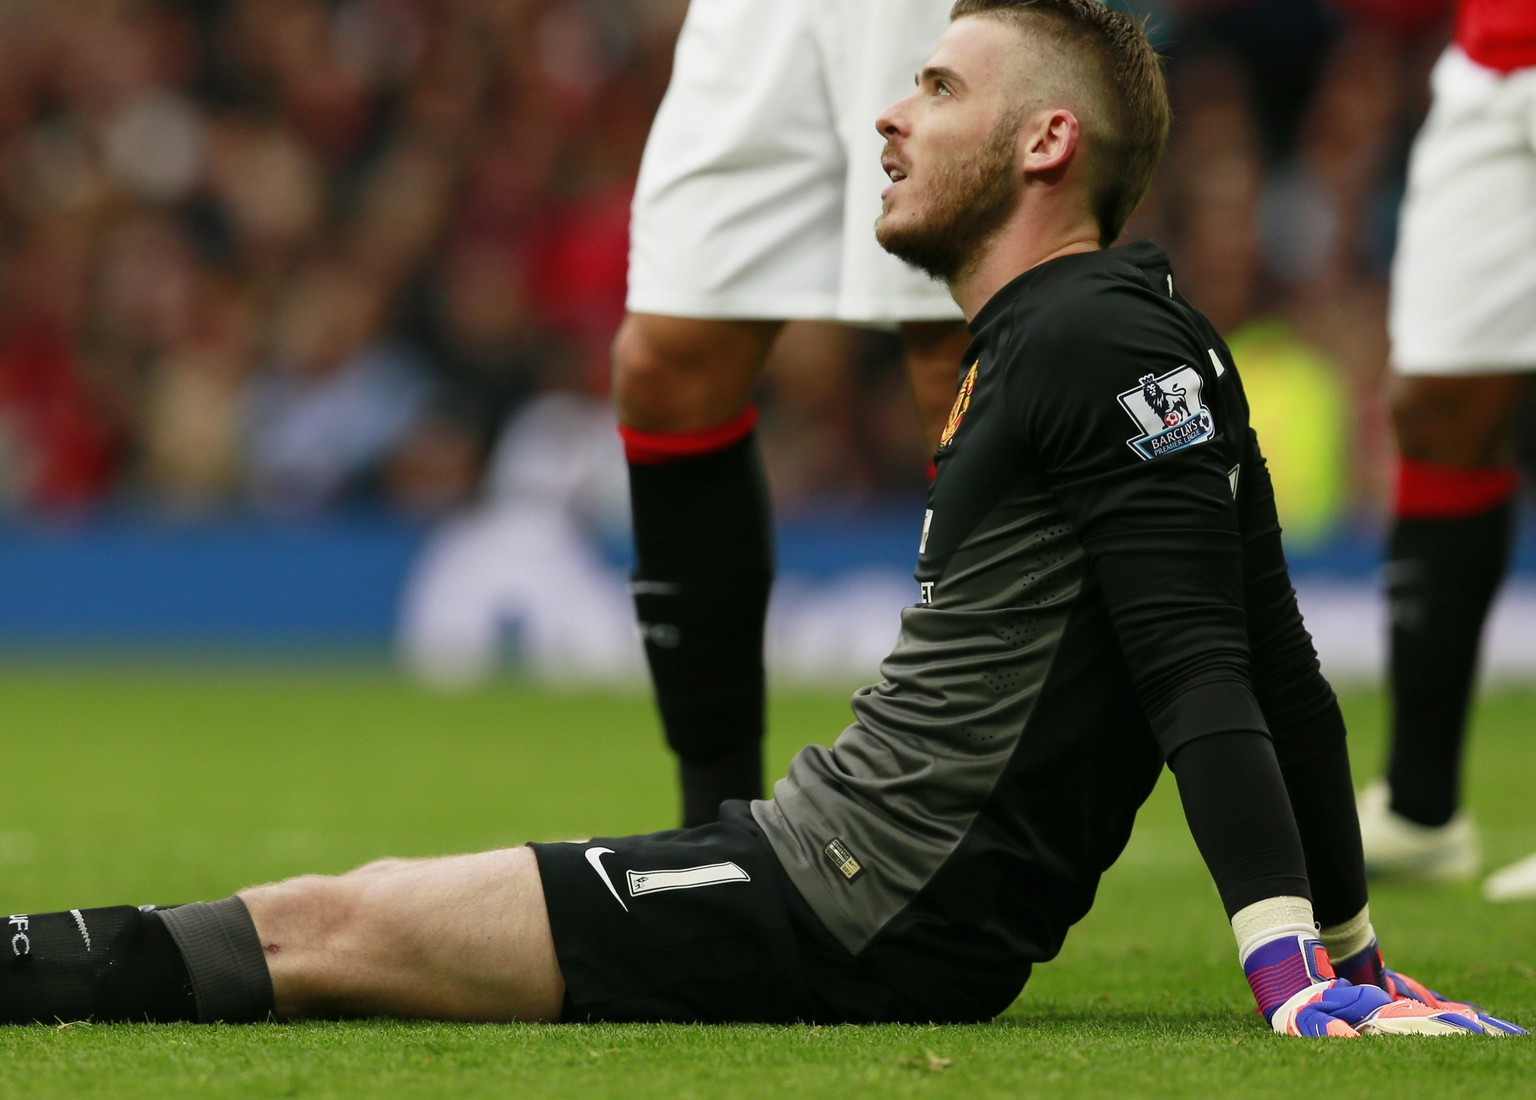 Football - Manchester United v Arsenal - Barclays Premier League - Old Trafford - 17/5/15